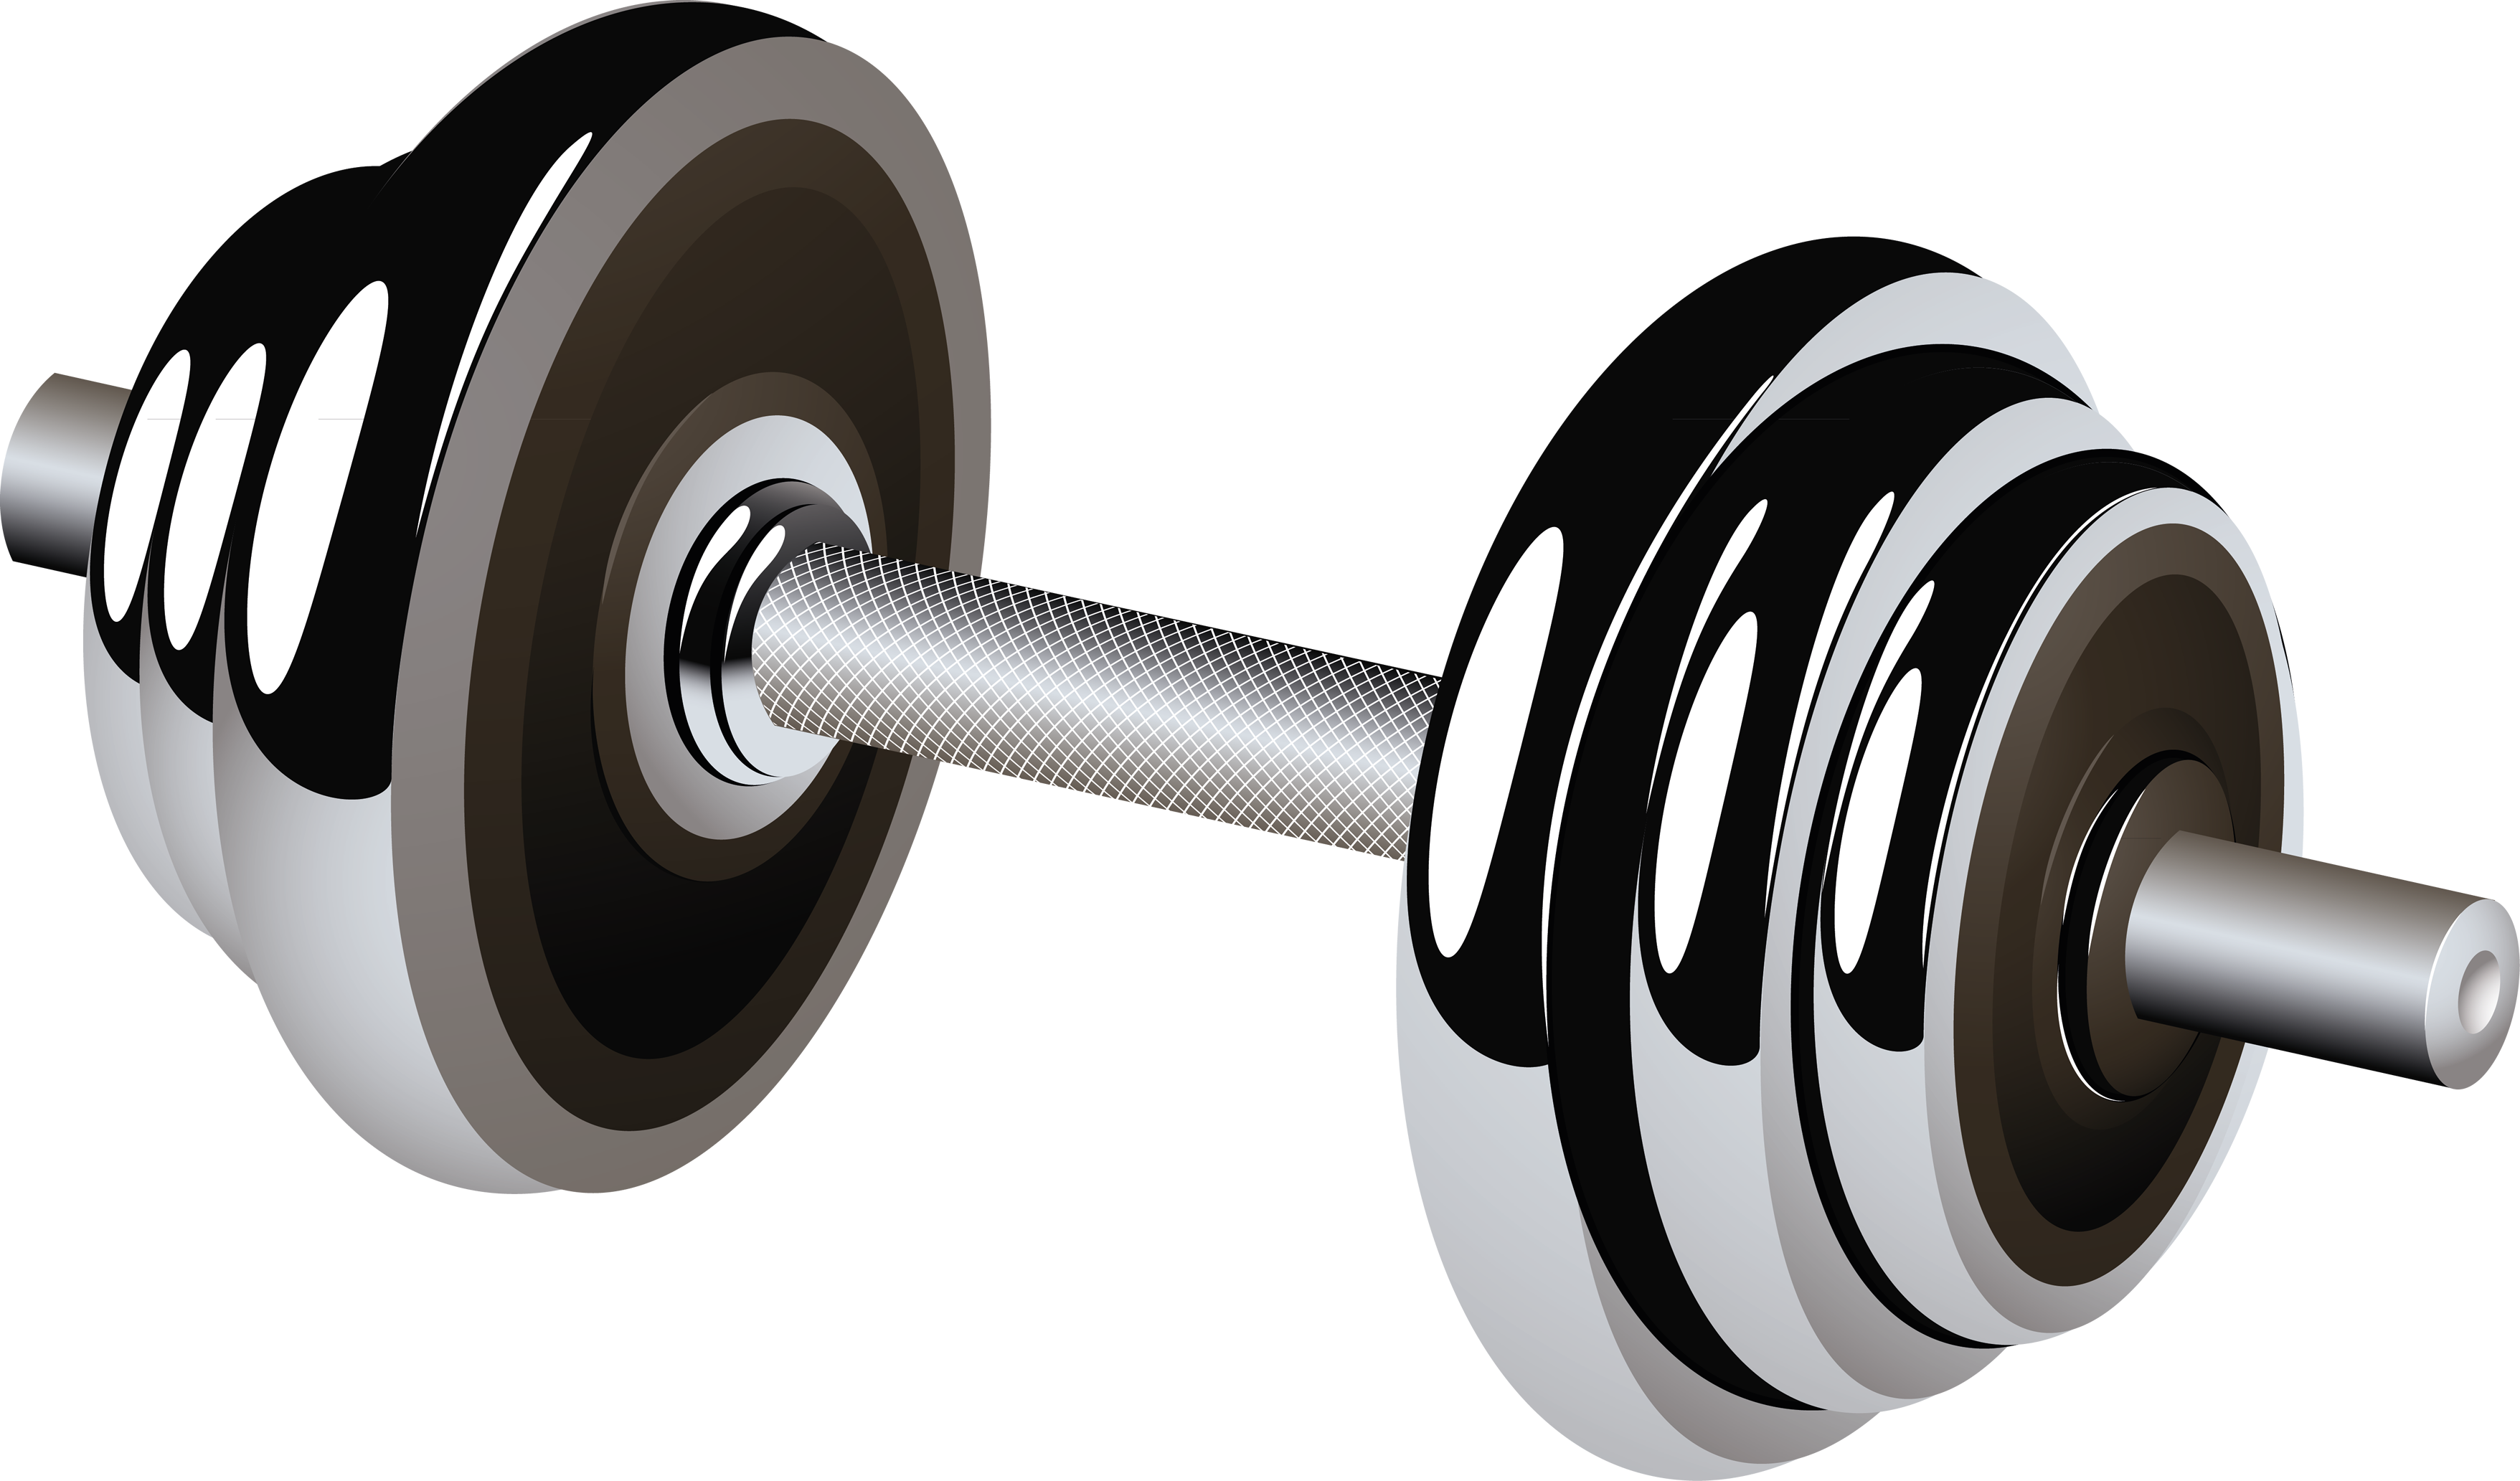 Barbell png. Image purepng free transparent